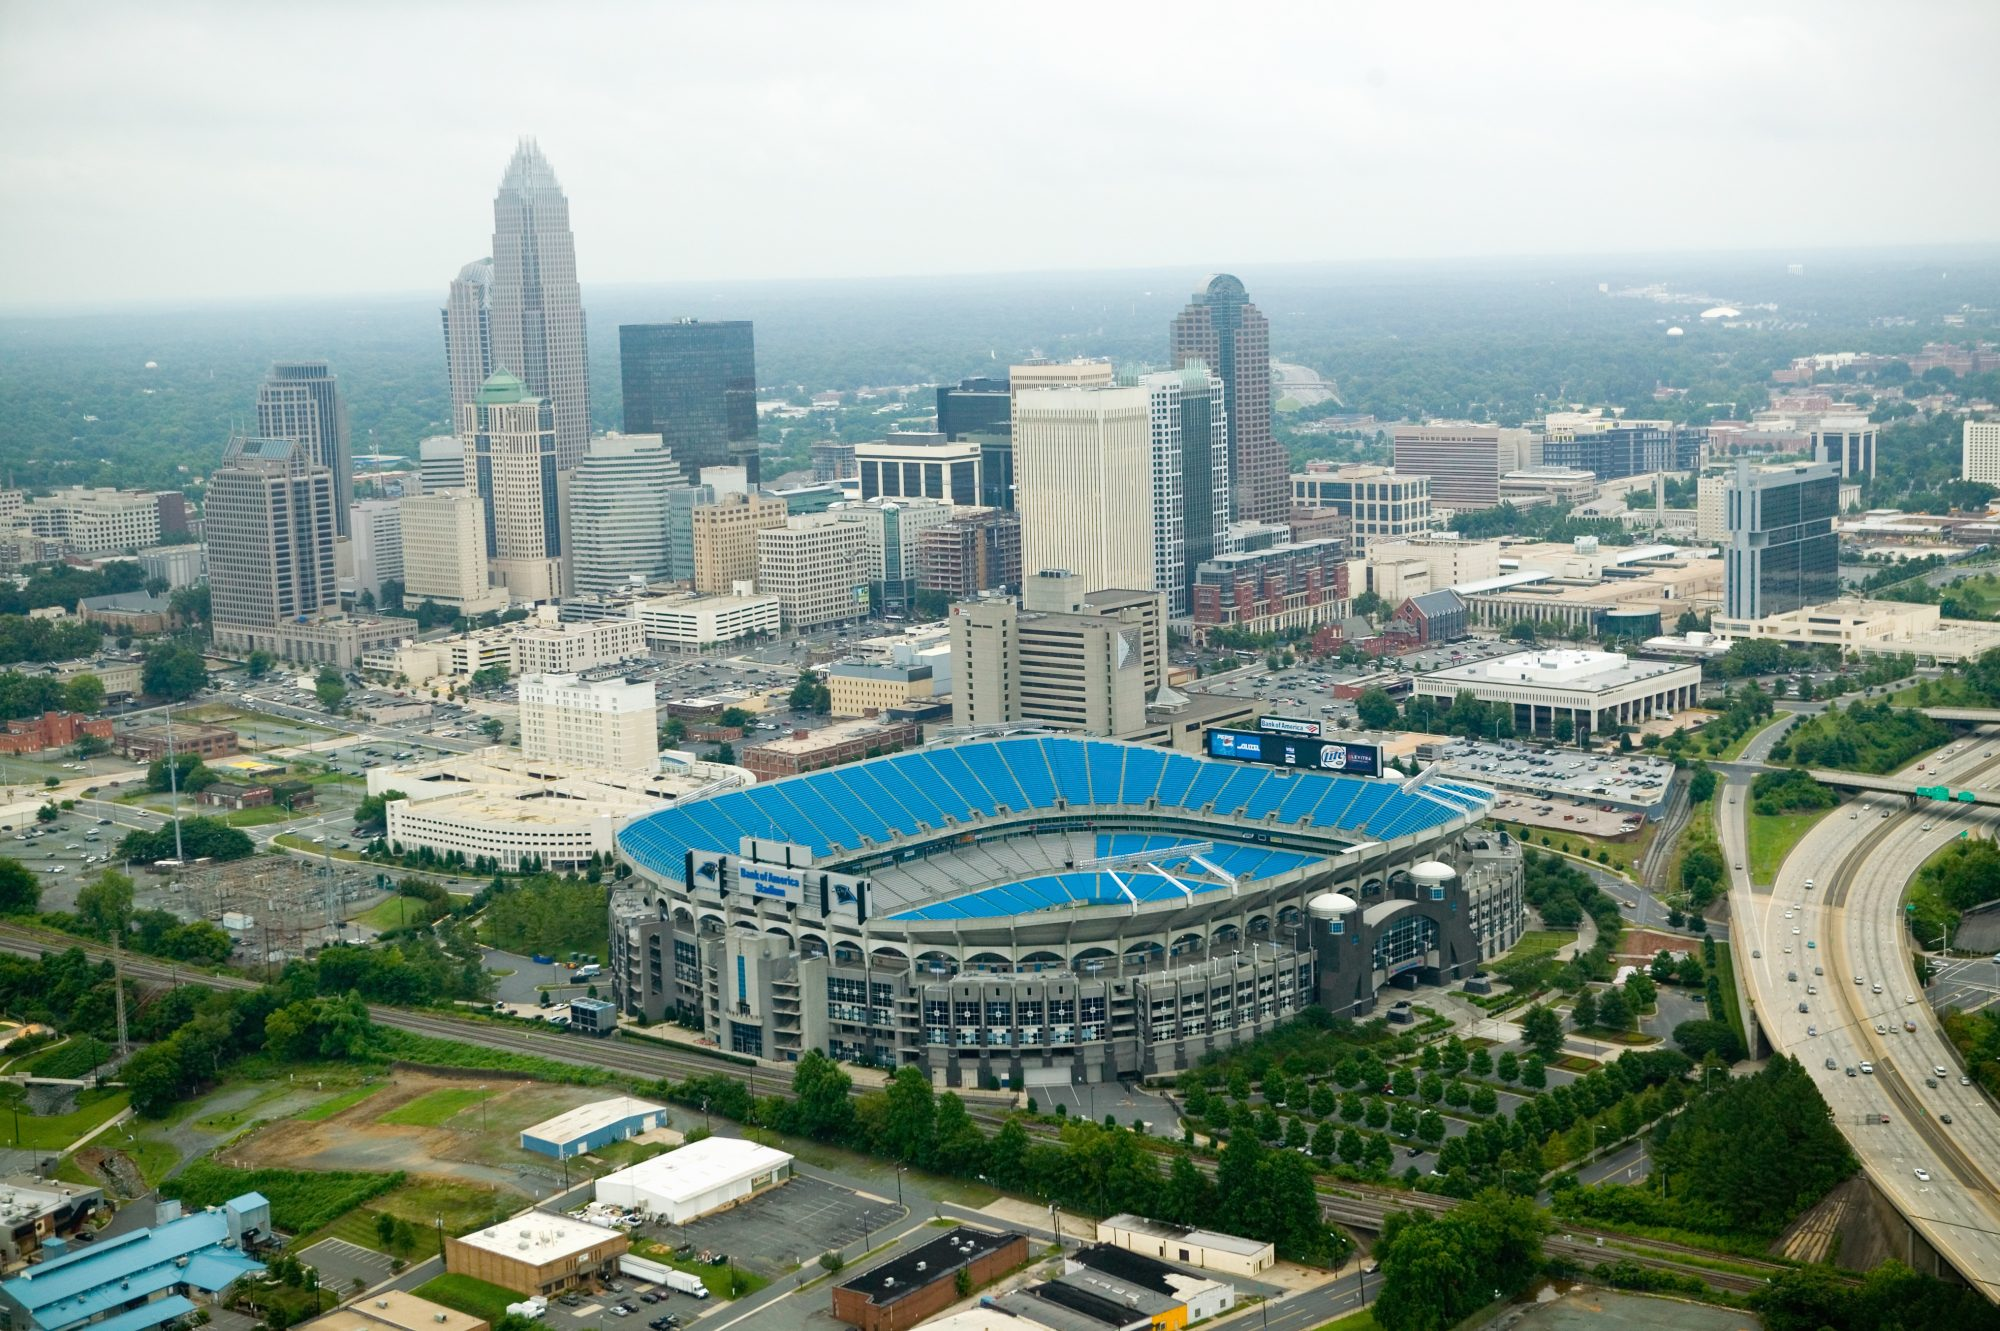 Charlotte, North Carolina- Queen City